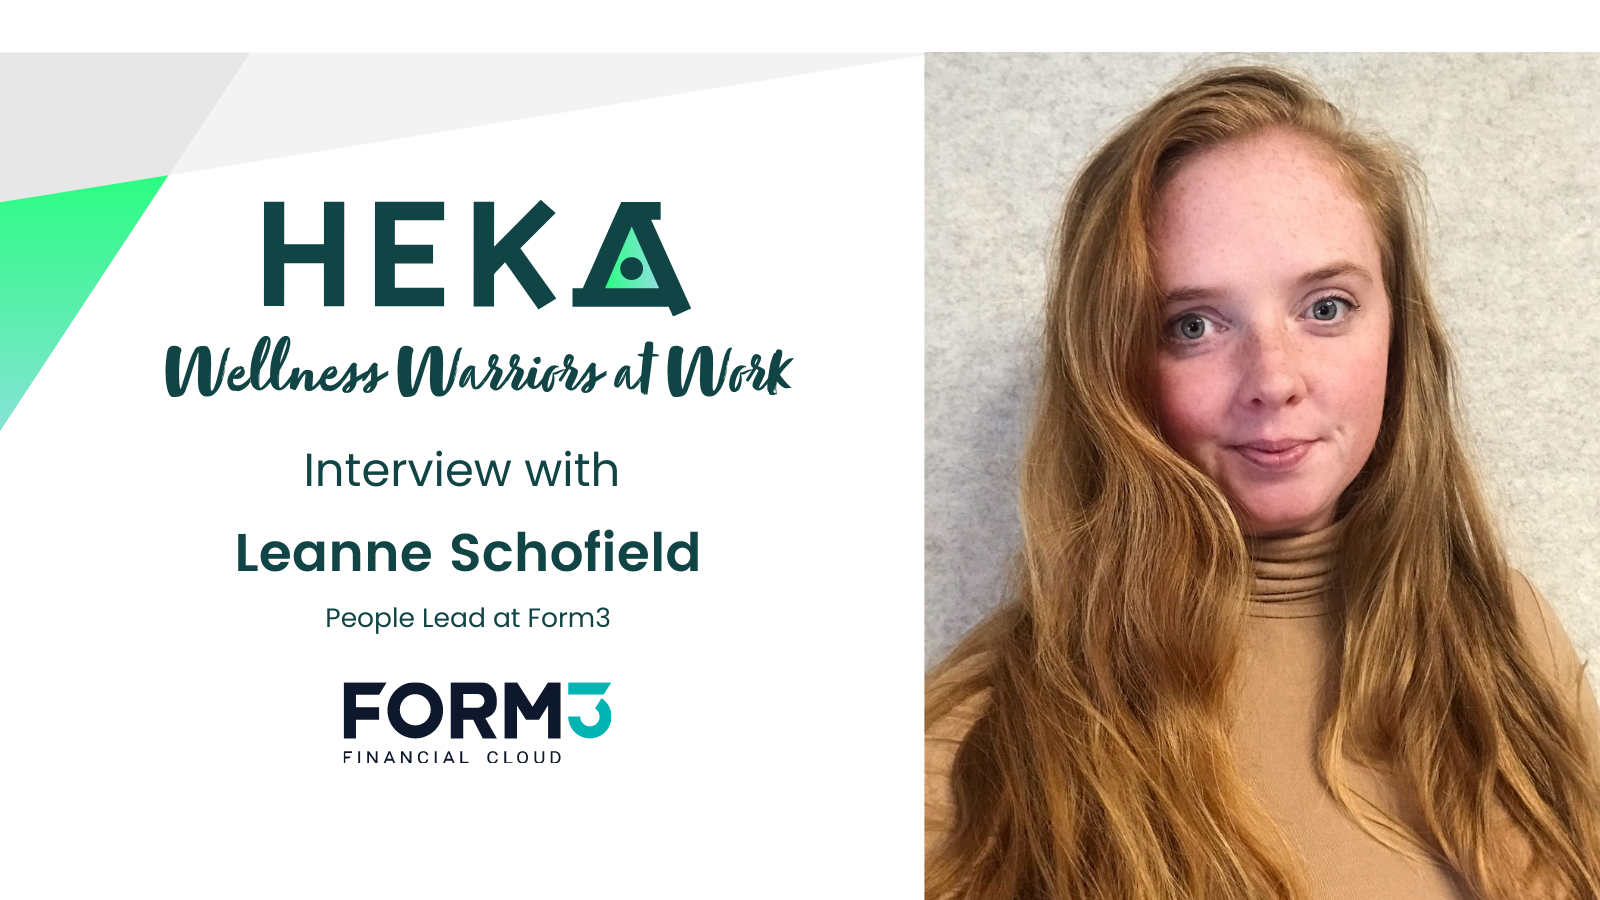 Interview with Leanne Schofield from Form3